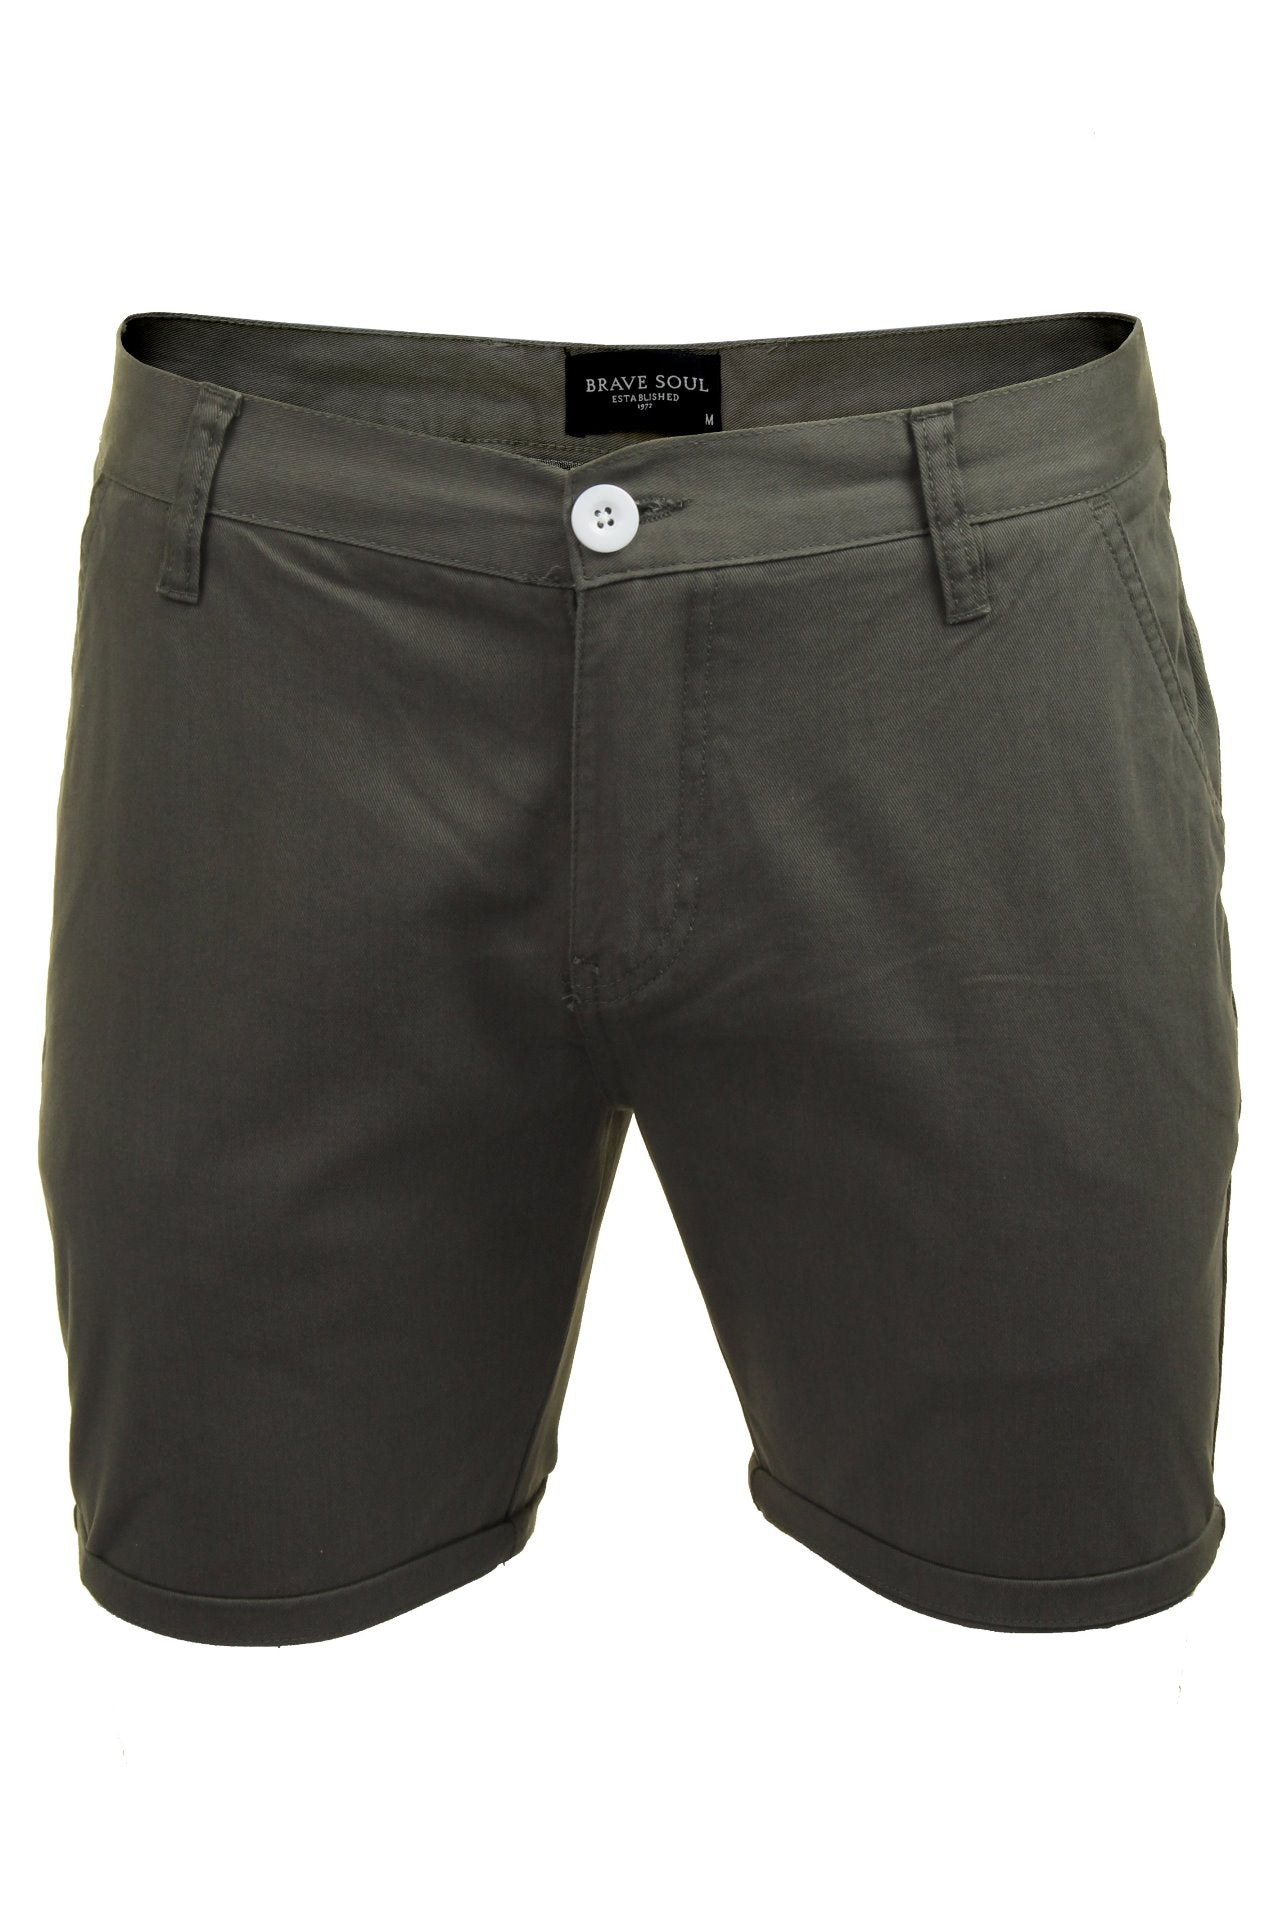 Mens Chino Short by Brave Soul 'Smith' Cotton Twill-Main Image